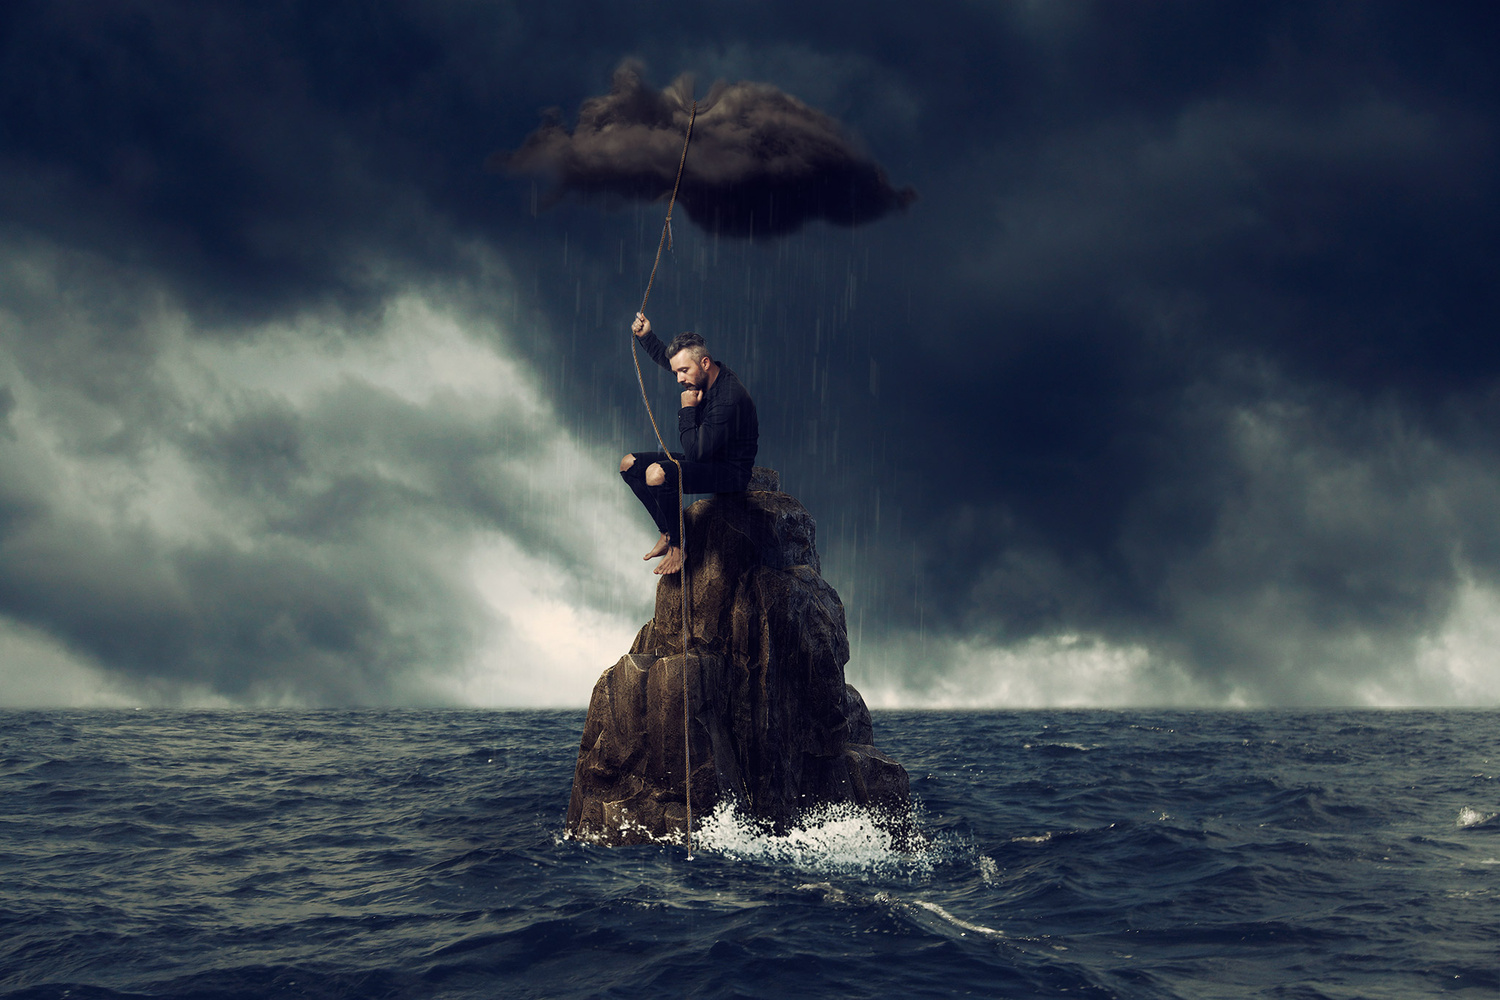 Let the rain wash away, all the pain of yesterday. by Slave Viktorijoski